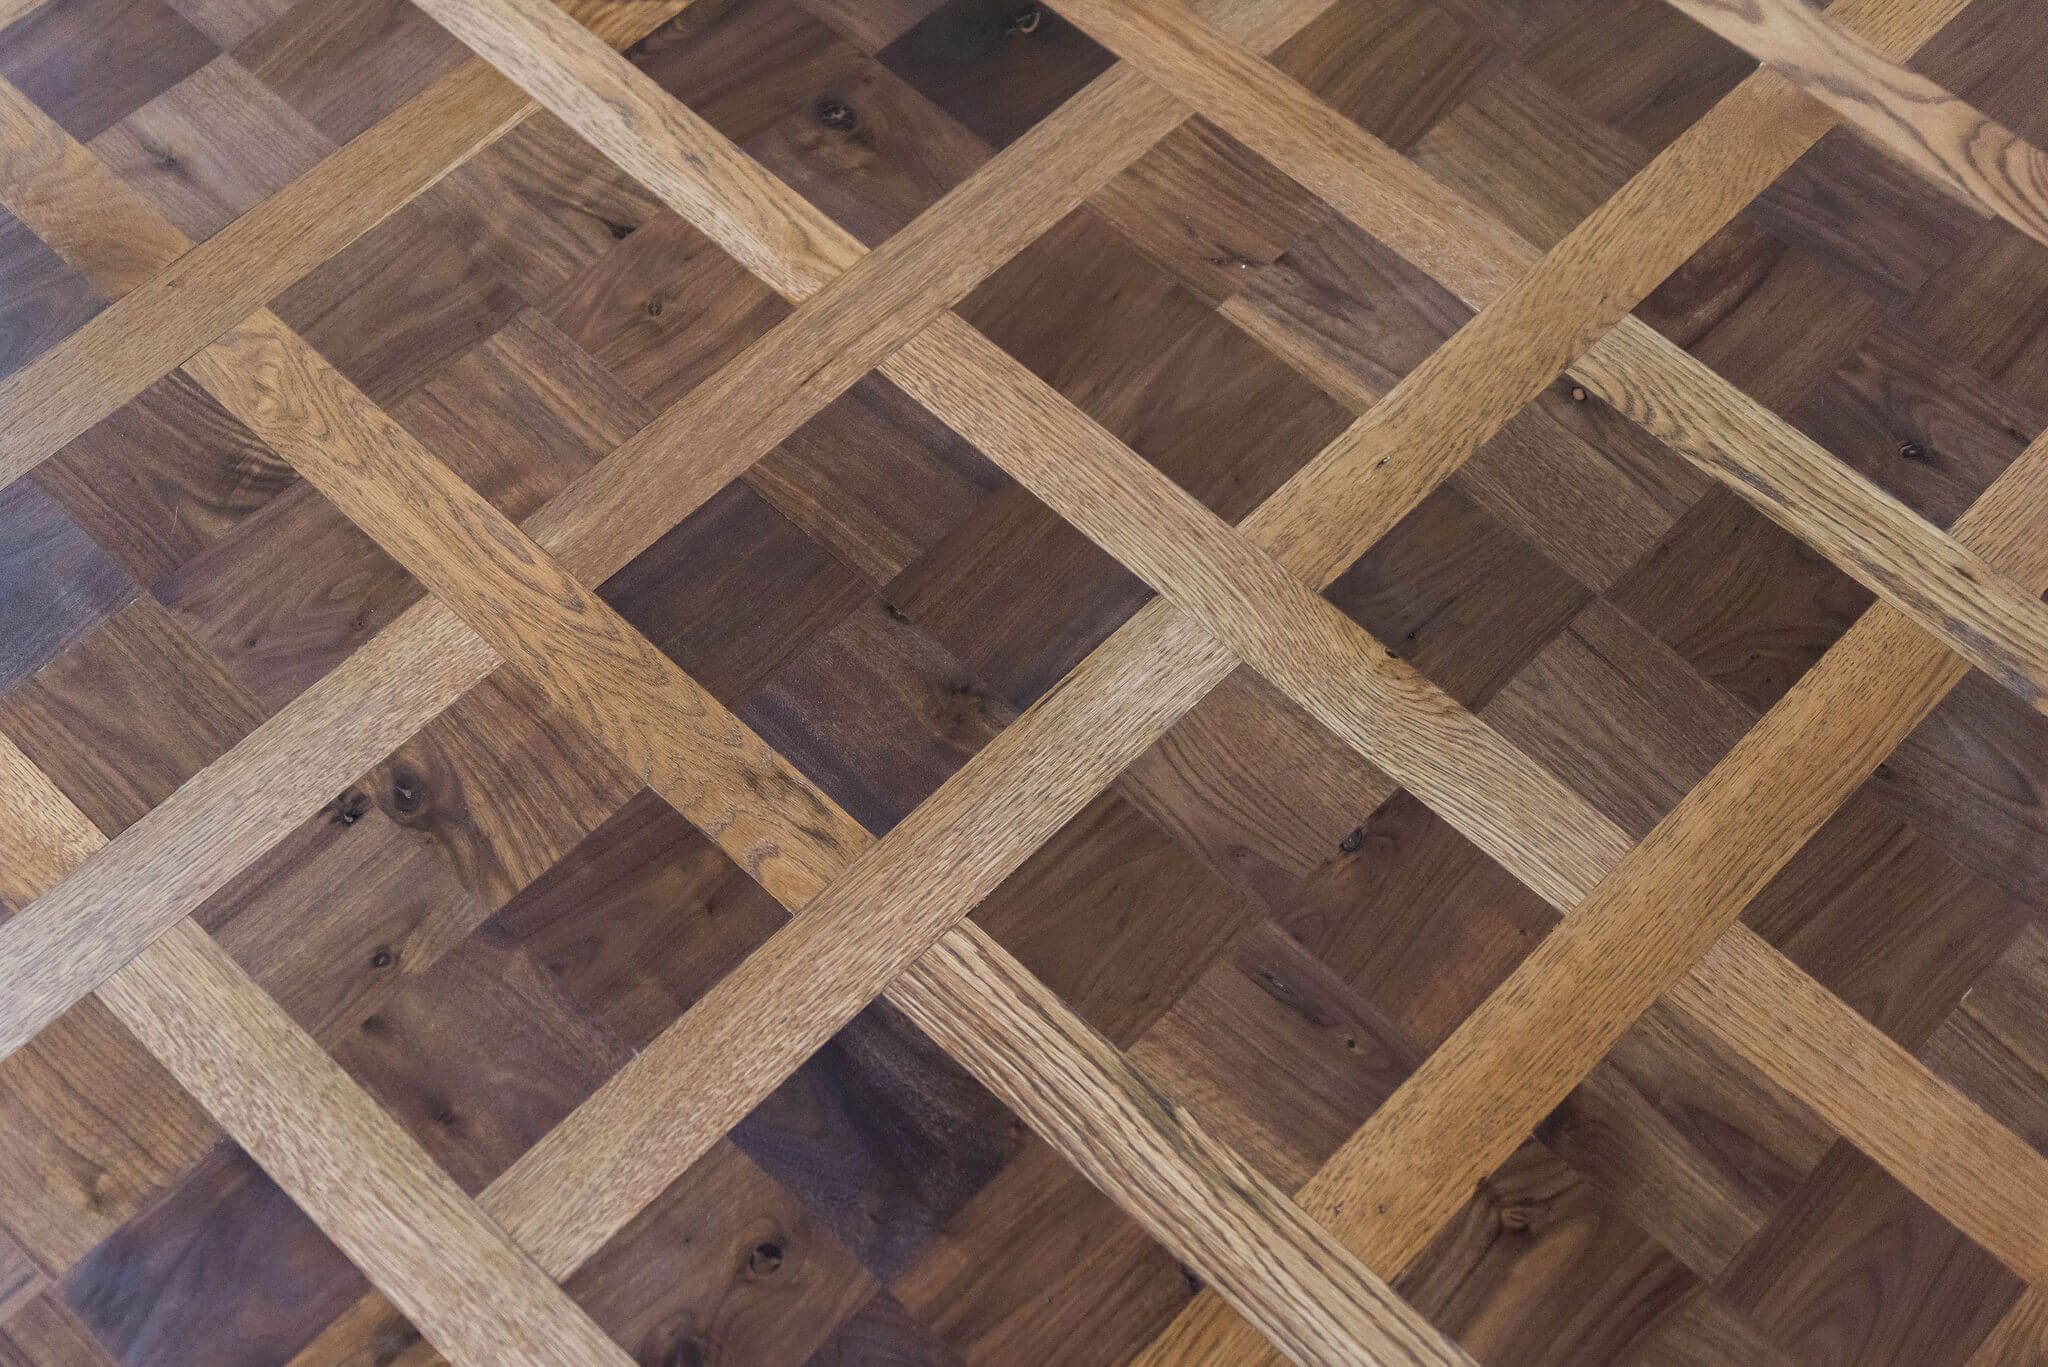 Another close up of beautiful parquet wooden floor finished with Rubio Monocoat.